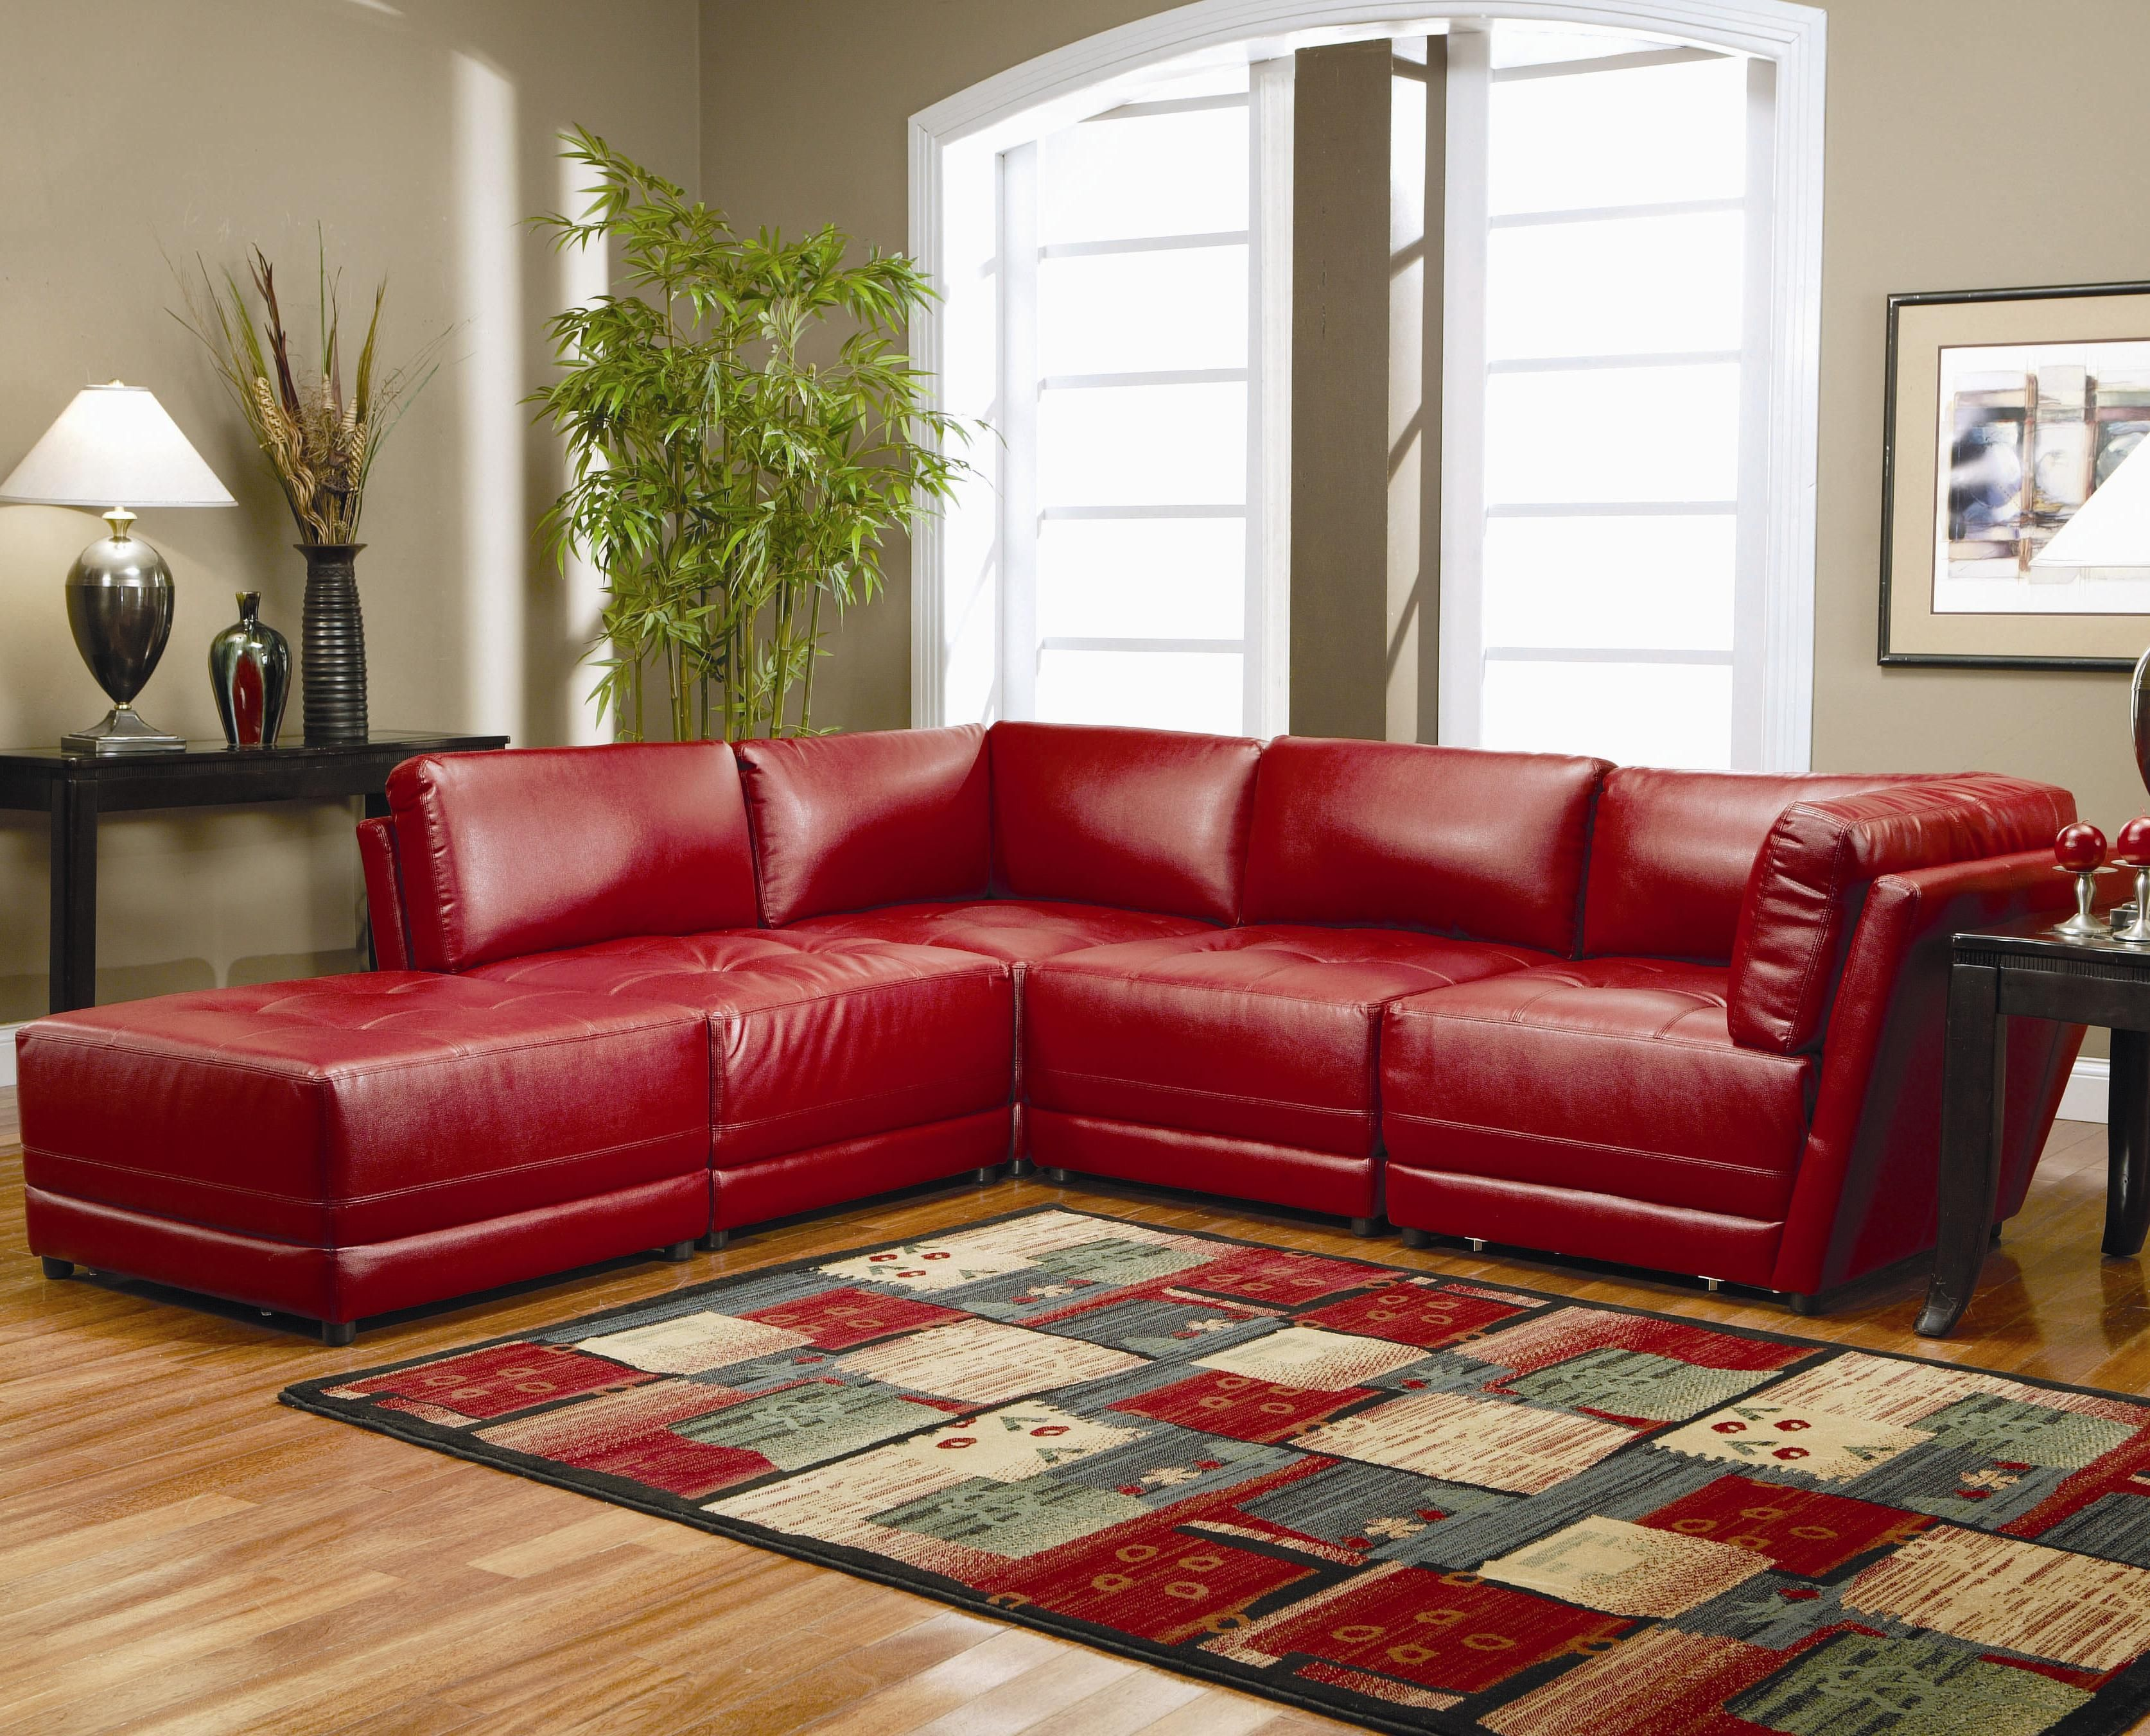 Faux Leather Red Sofa Leather Couches Living Room Red Couch